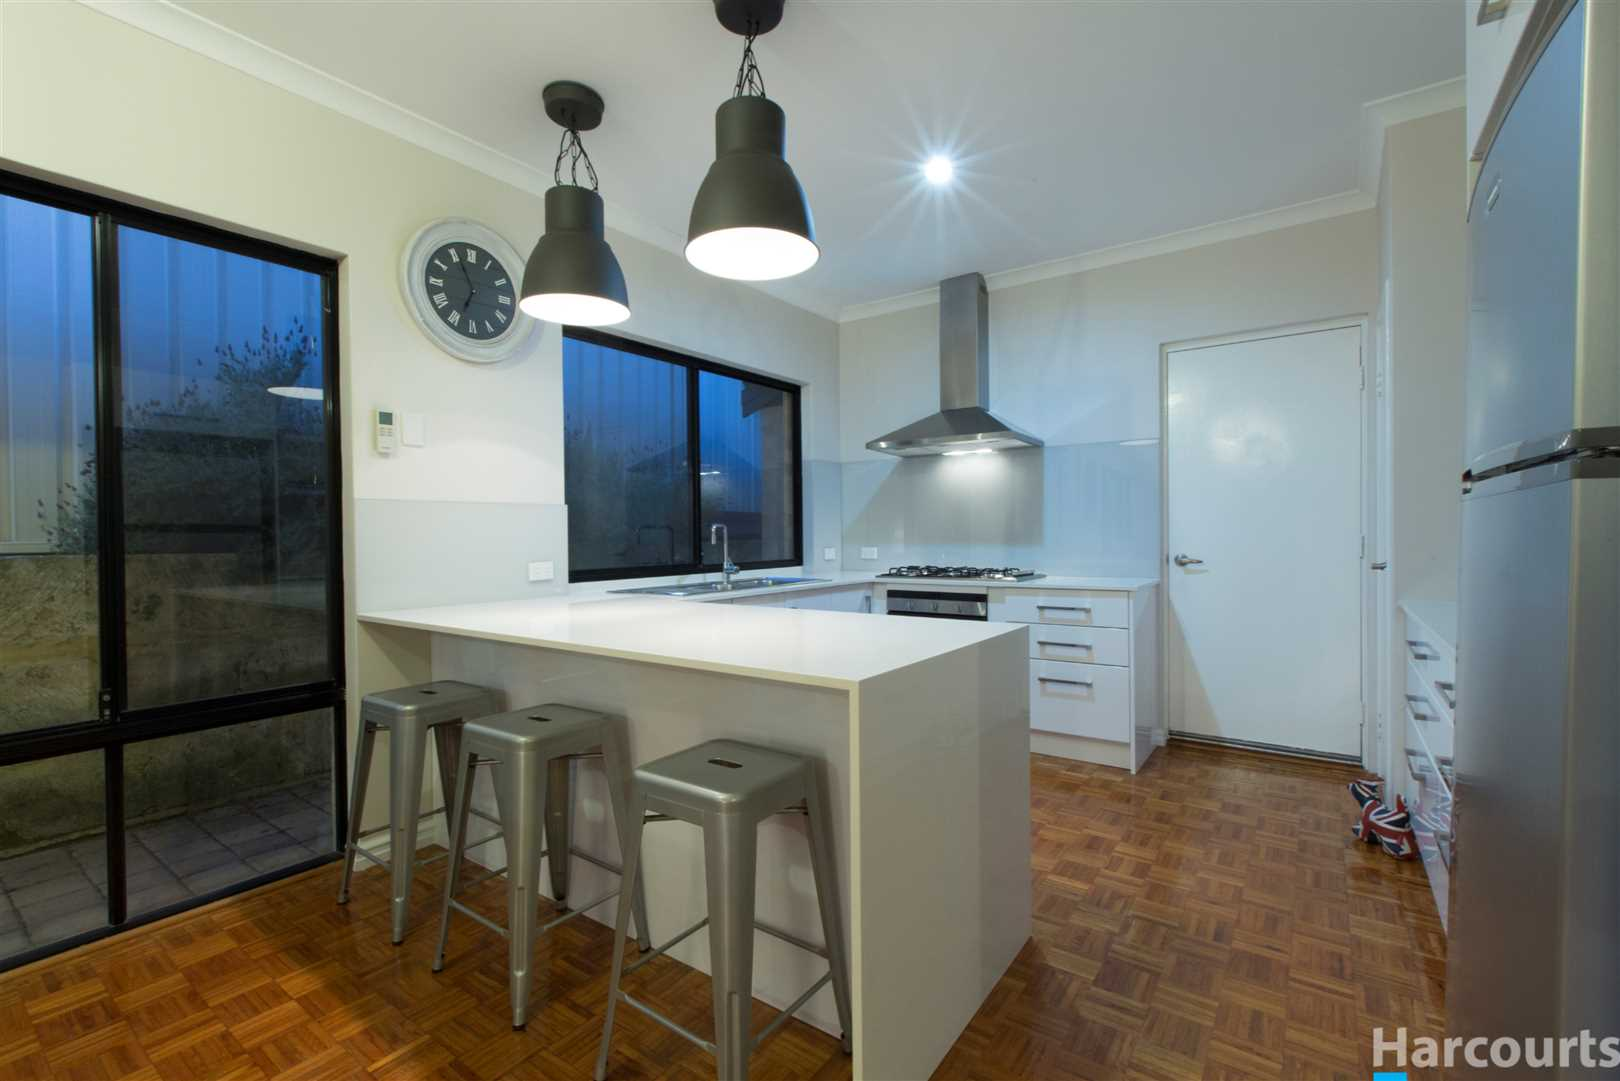 Currambine, 37a Eastleigh Loop | Harcourts Alliance | Harcourts